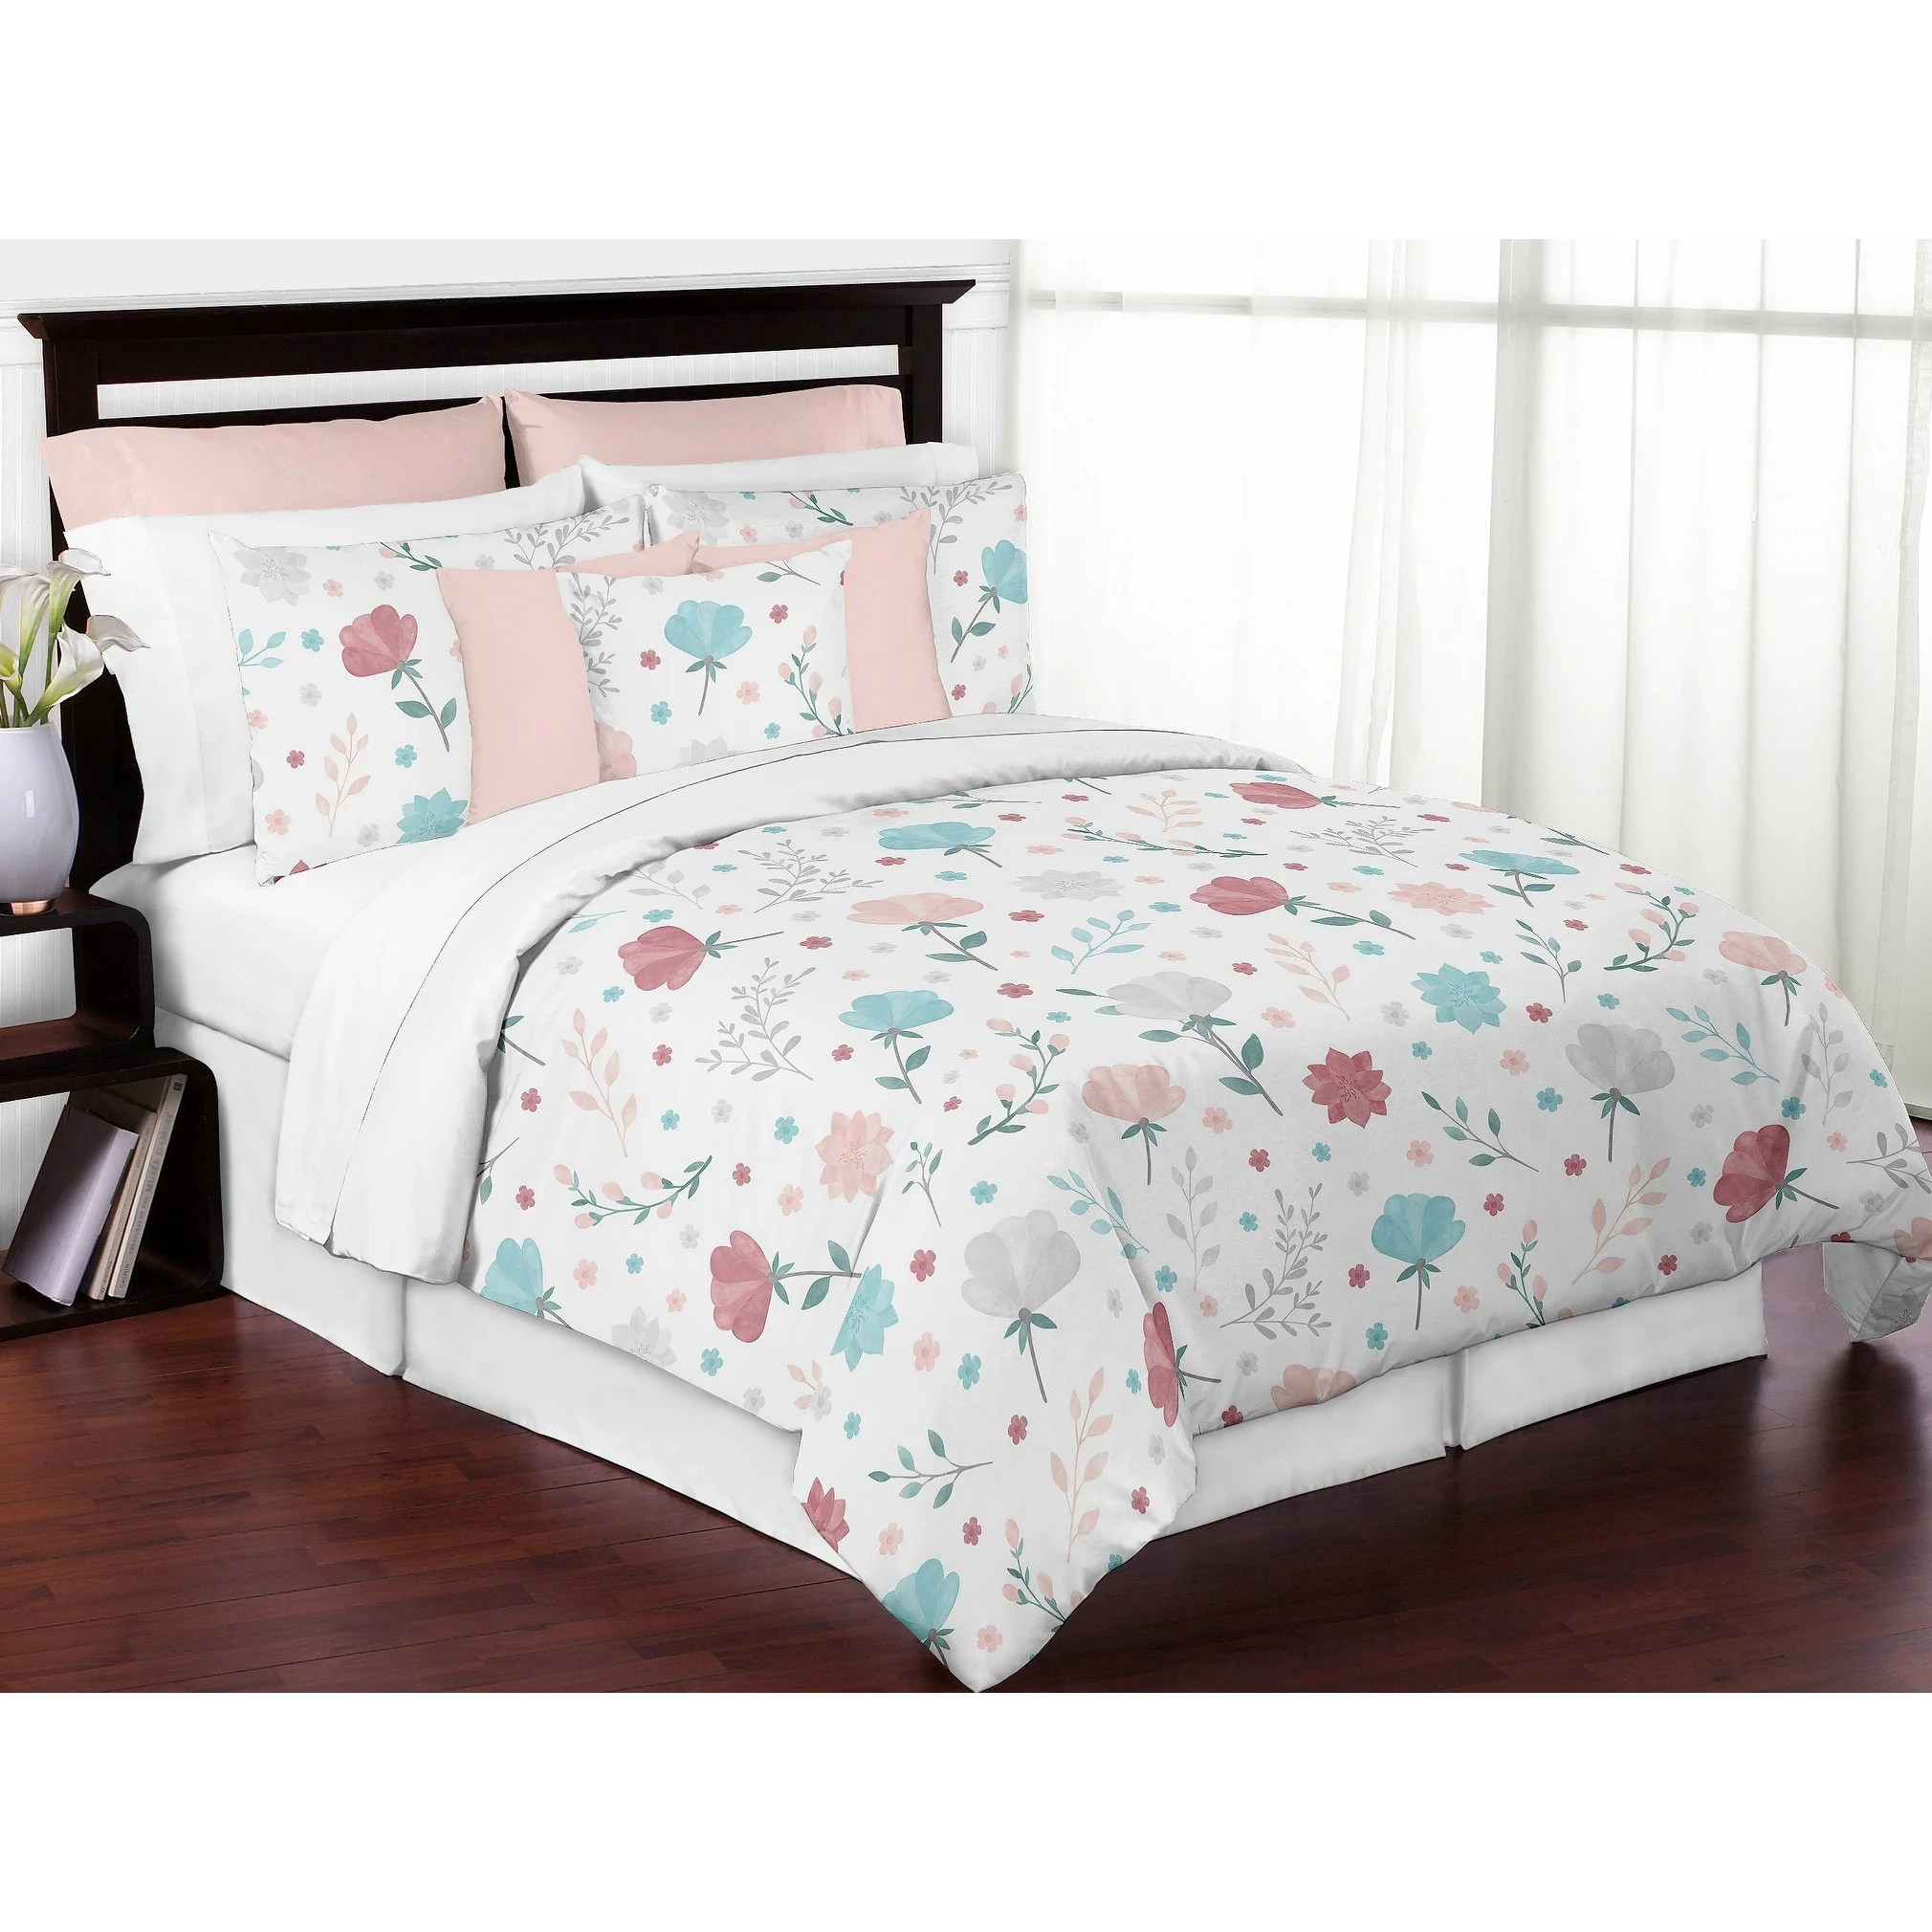 pop floral rose flowers girl 3pc full queen comforter set blush pink teal turquoise aqua blue grey boho shabby chic watercolor